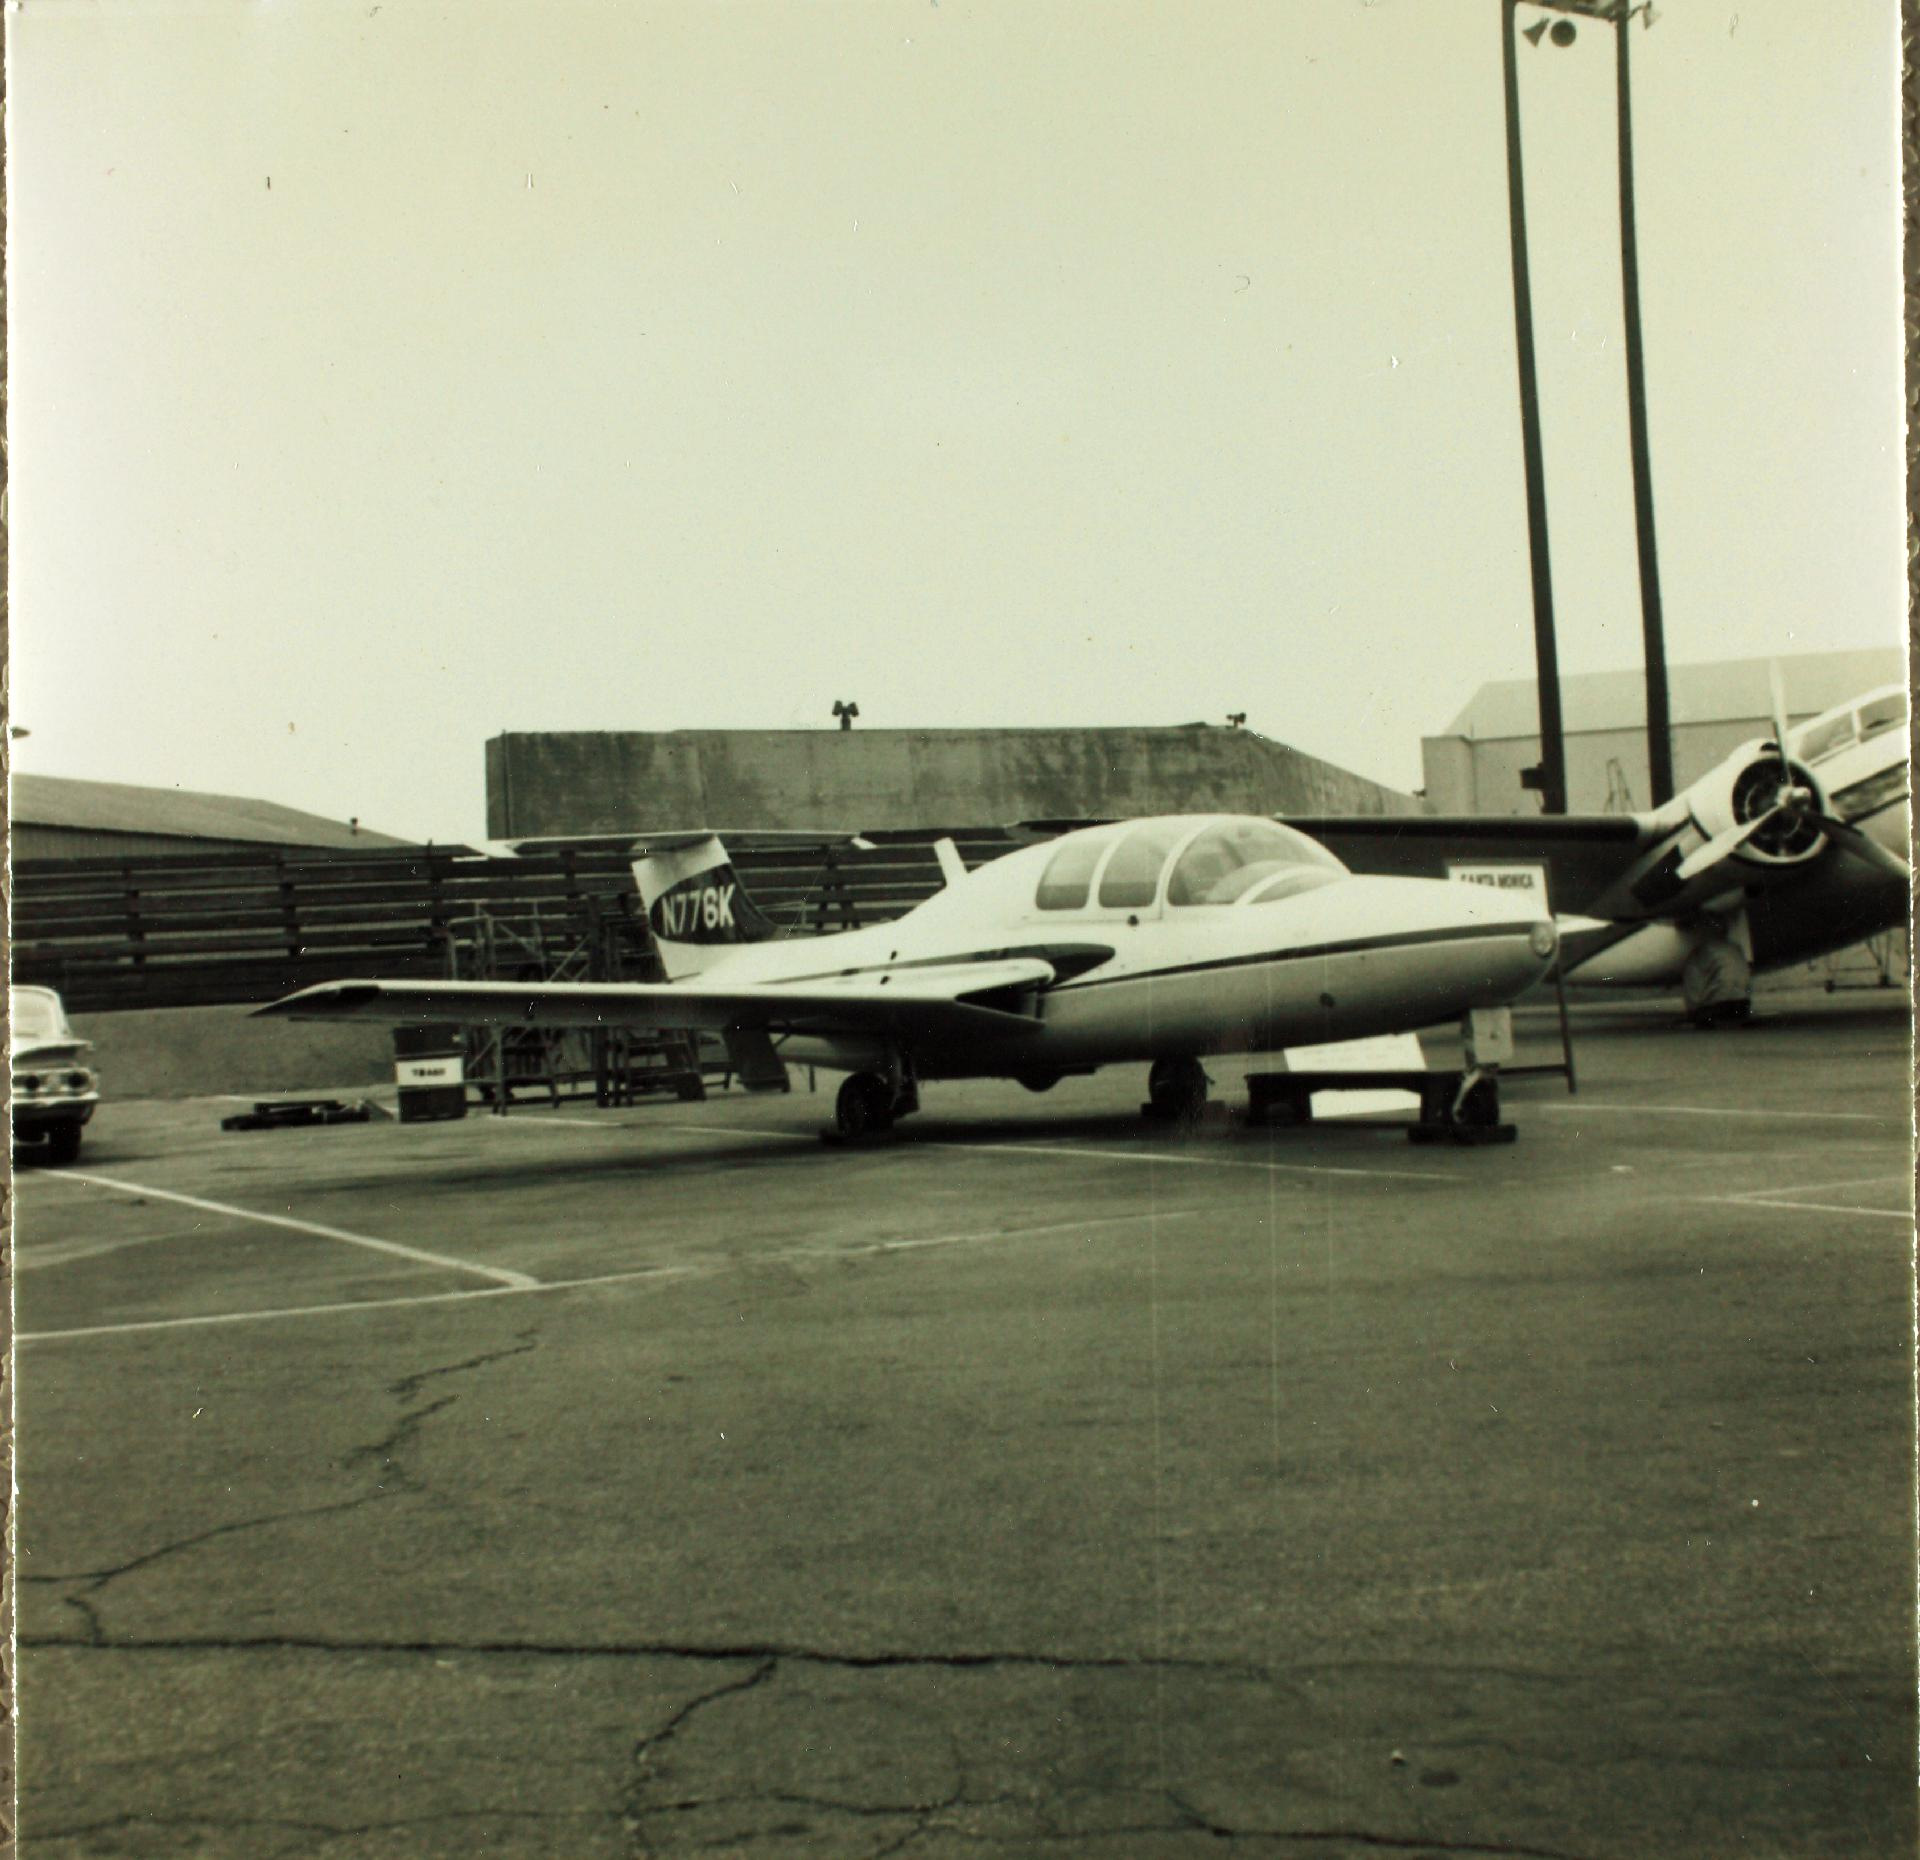 At the Santa Monica Airport (confirmed by the sign over N776K's port wing). From San Diego Air and Space Museum Archives.